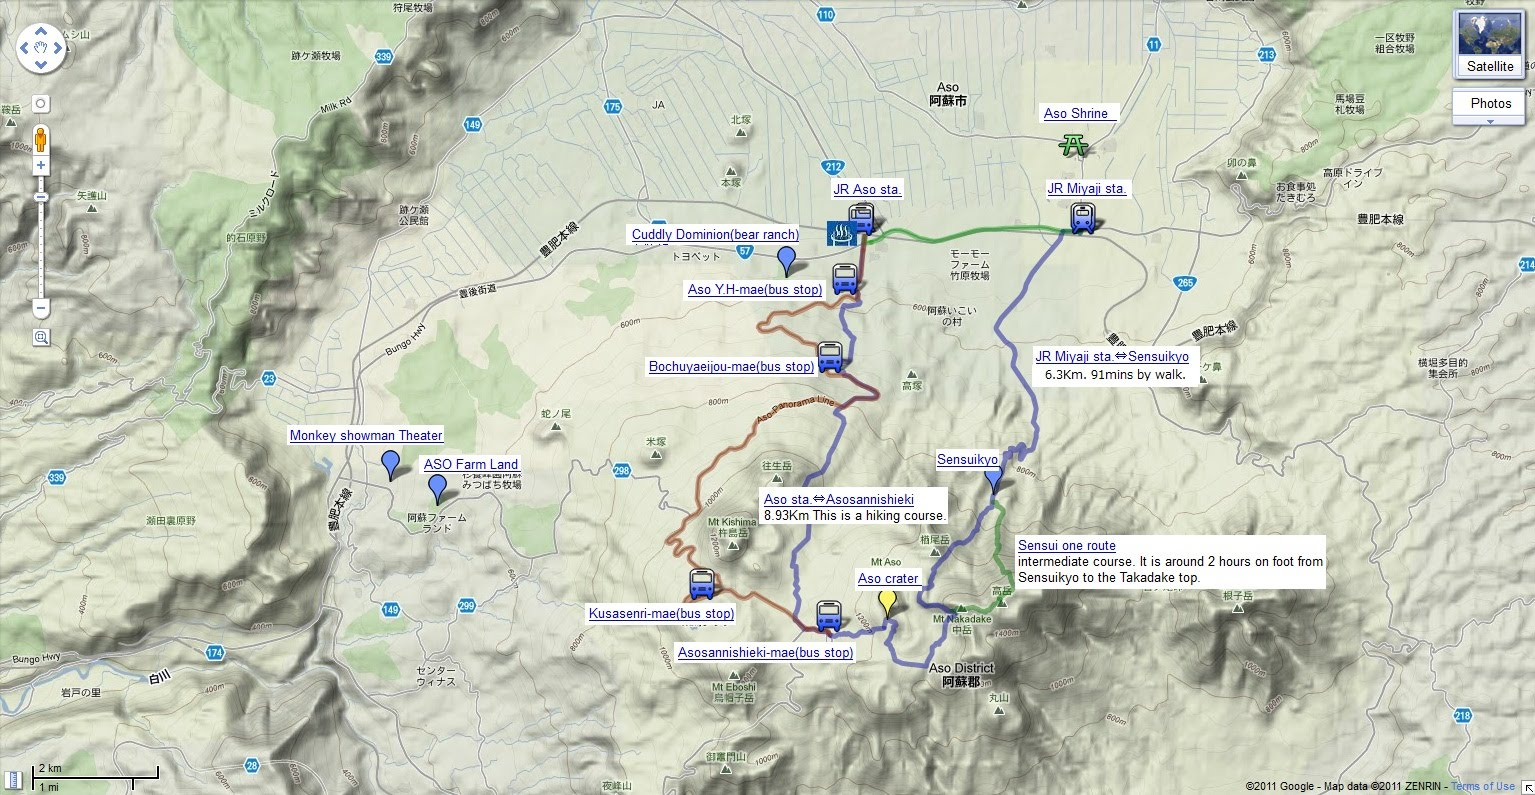 005 google map of the aso hiking course mtaso climbing route map jr timetable